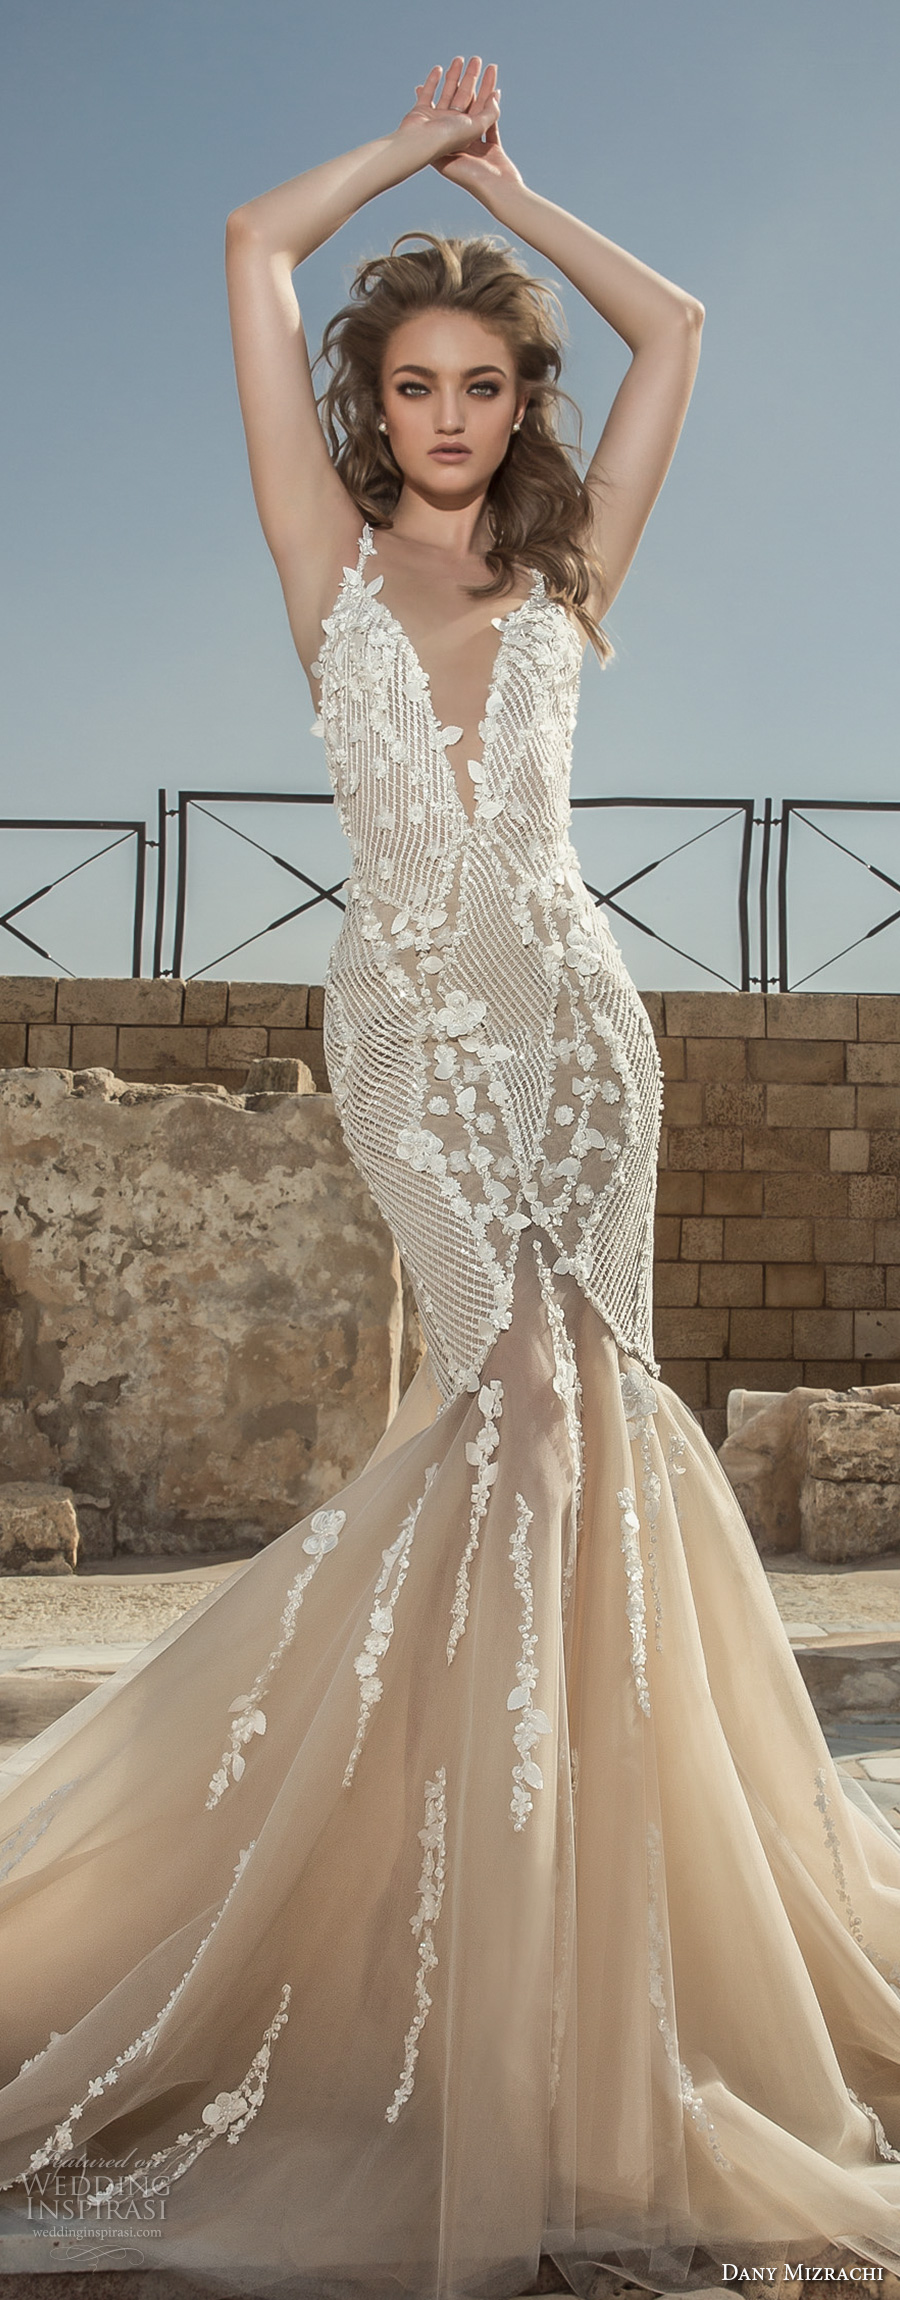 Dany Mizrachi 2018 Wedding Dresses